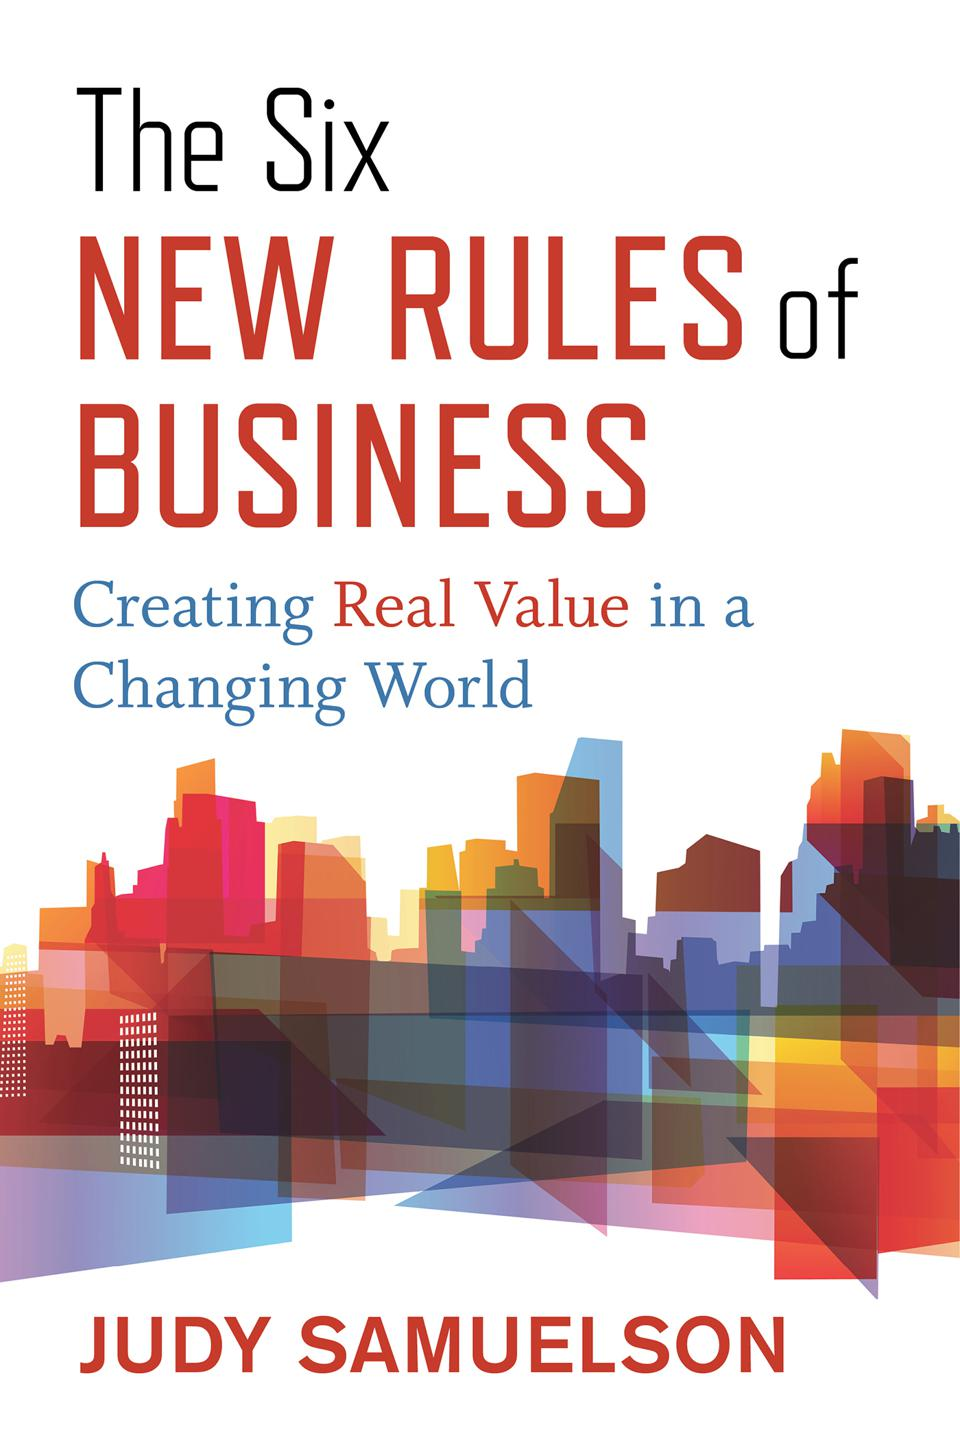 The Six New Rules of Business Book Cover